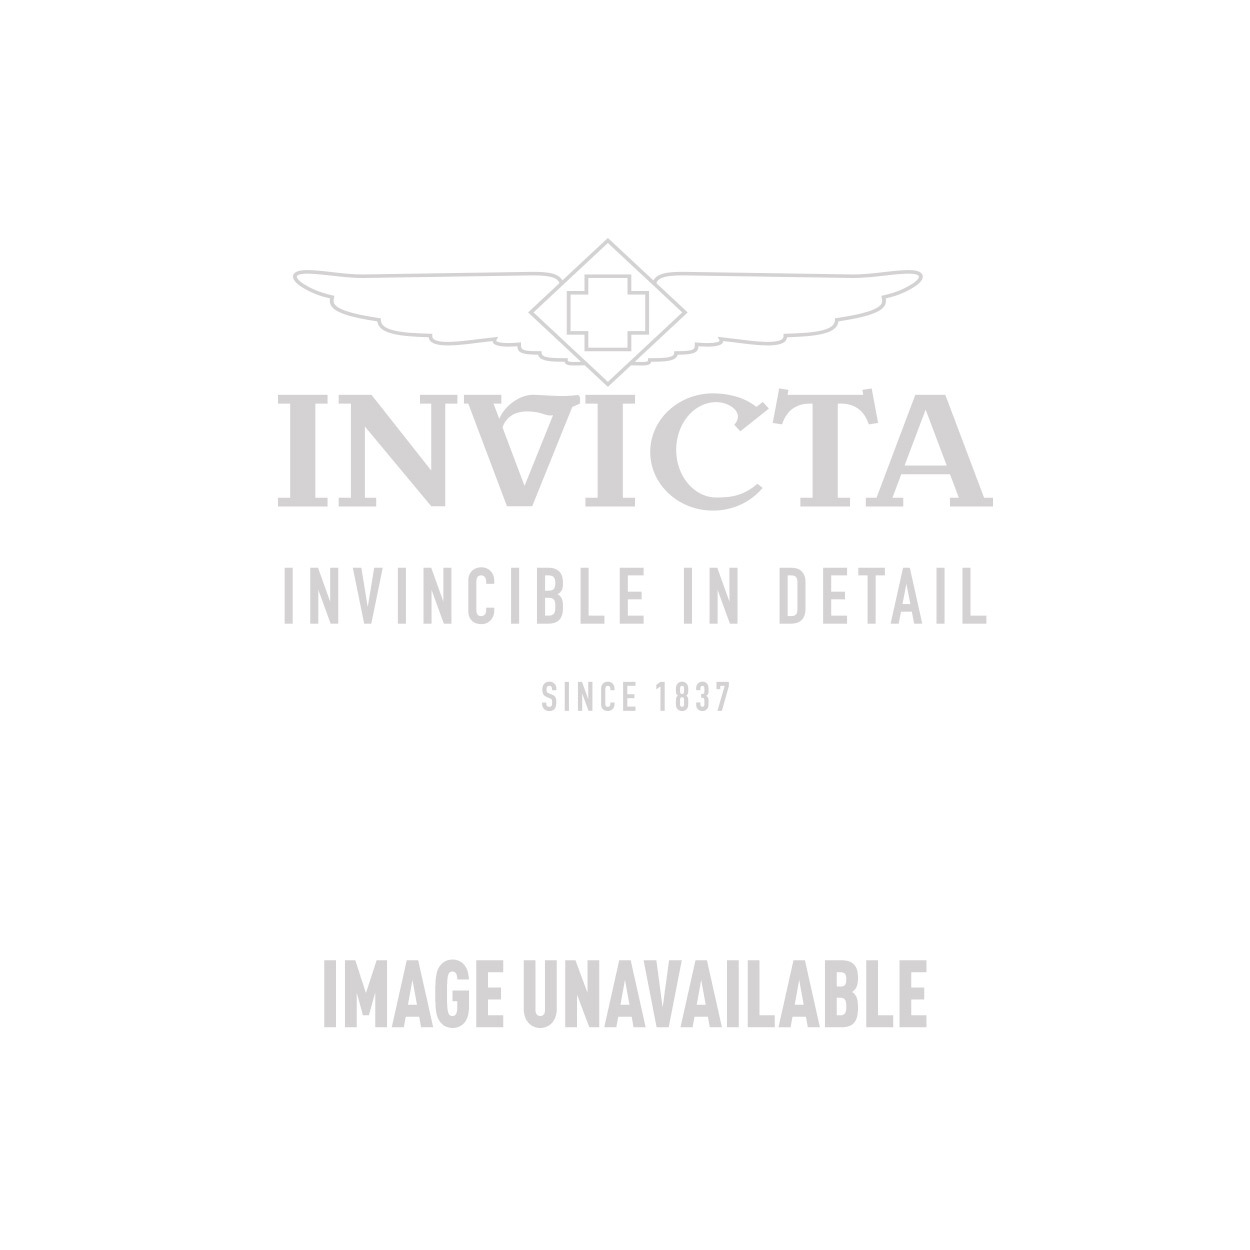 Invicta I-Force Quartz Watch - Stainless Steel case Stainless Steel band - Model 14955